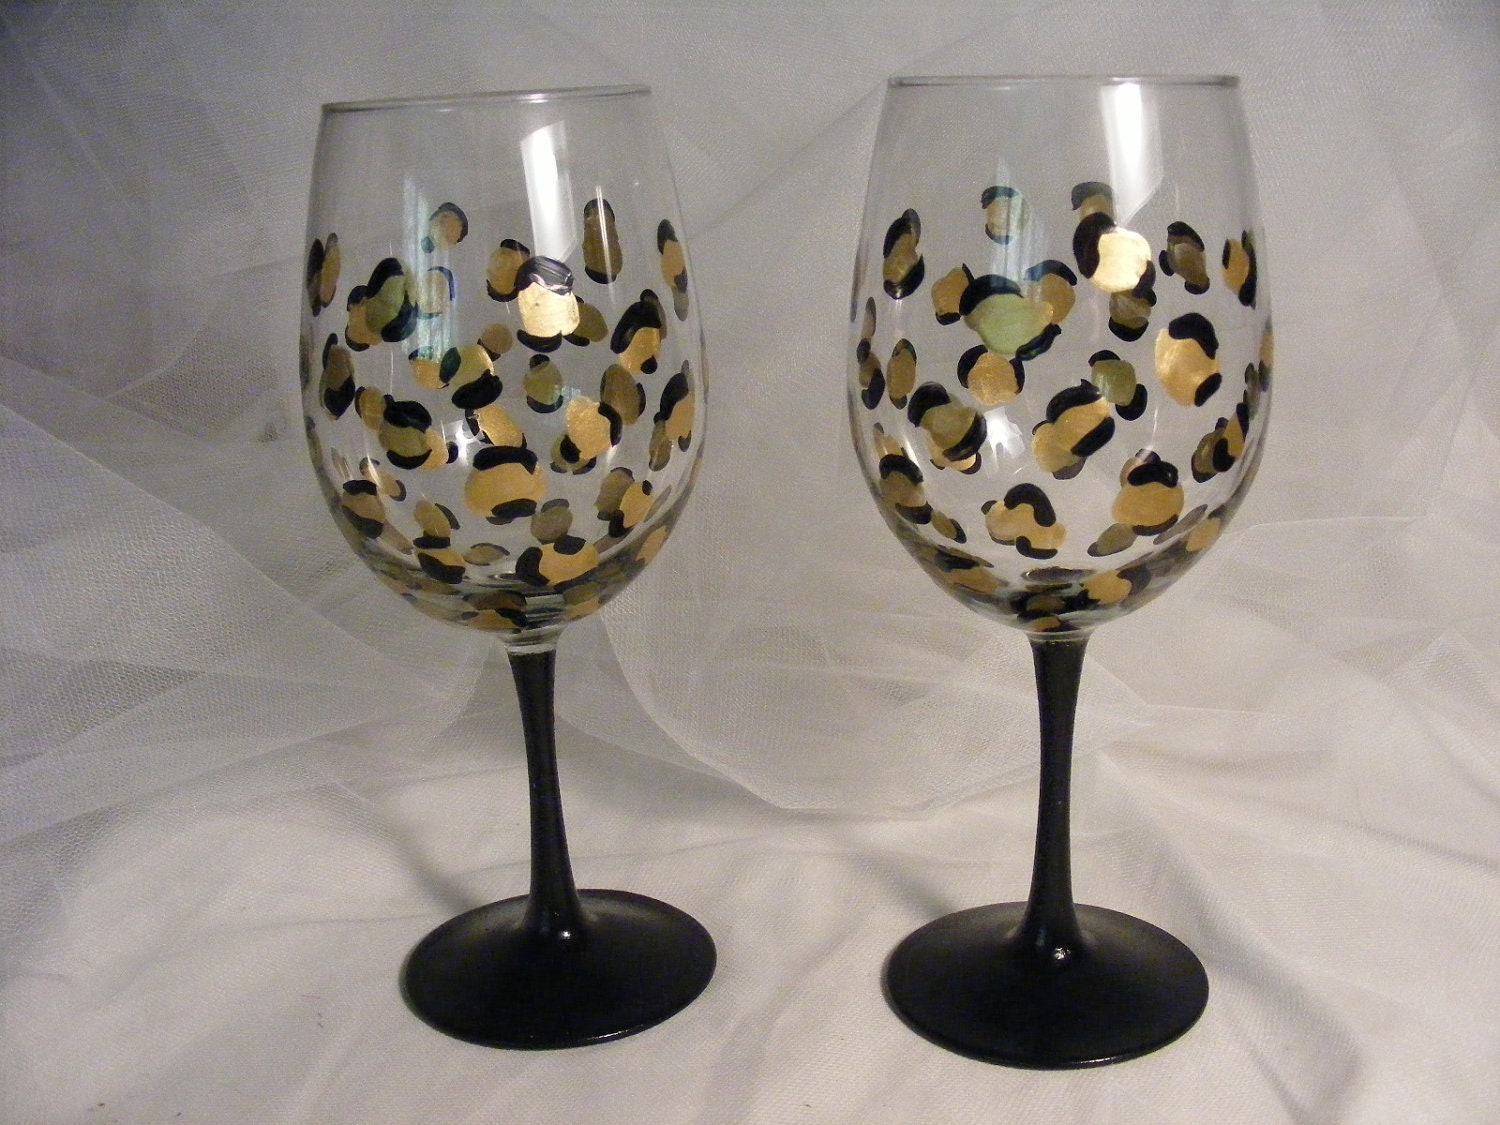 Leopard print wine glass glasses with black stem great Images of painted wine glasses